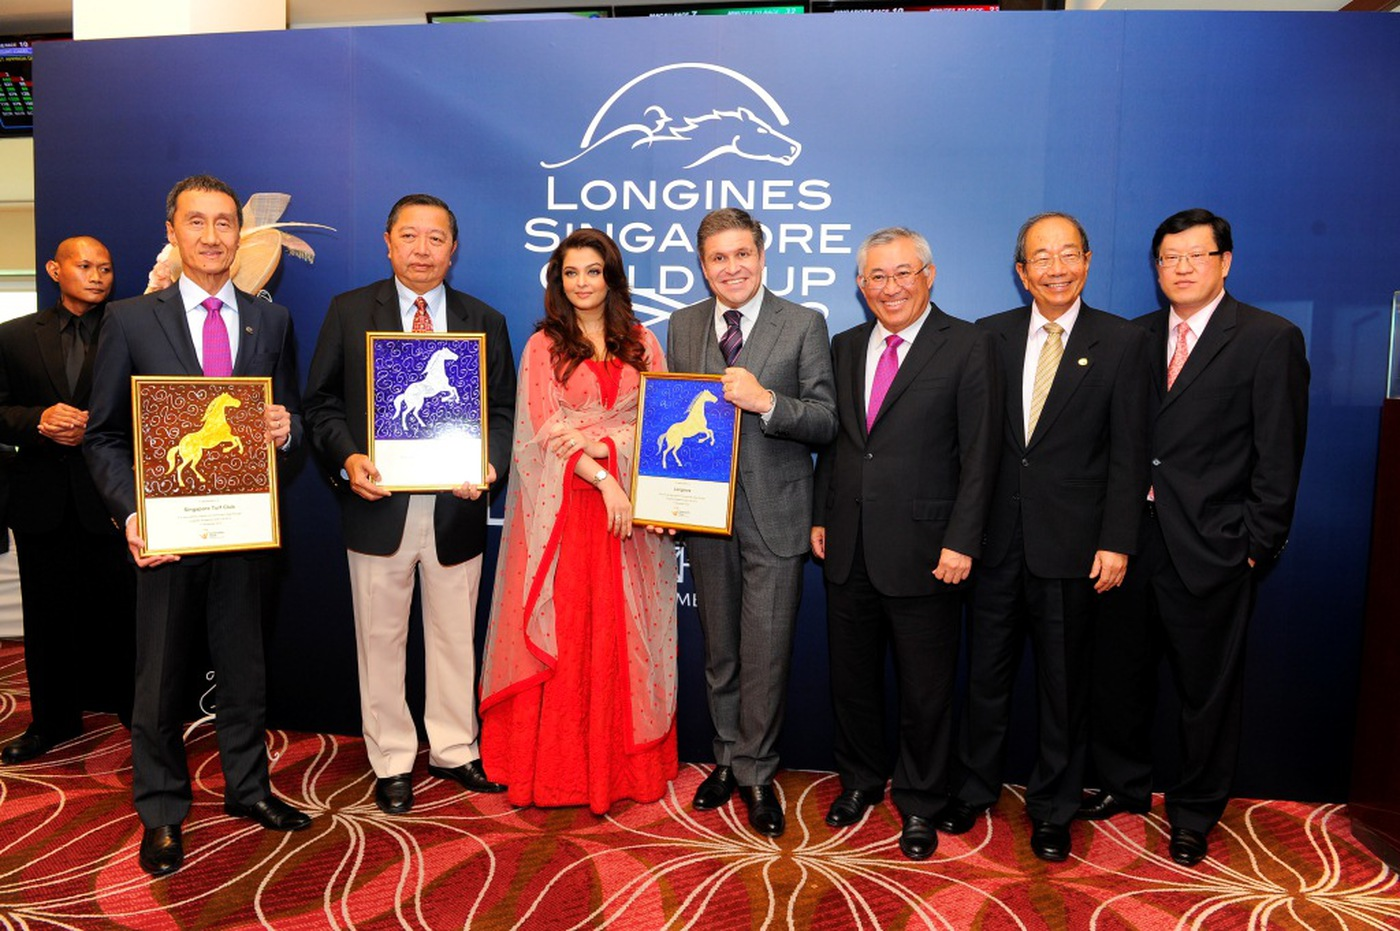 Longines Flat Racing Event: Longines Singapore Gold Cup 2012 raises S$236,728 10